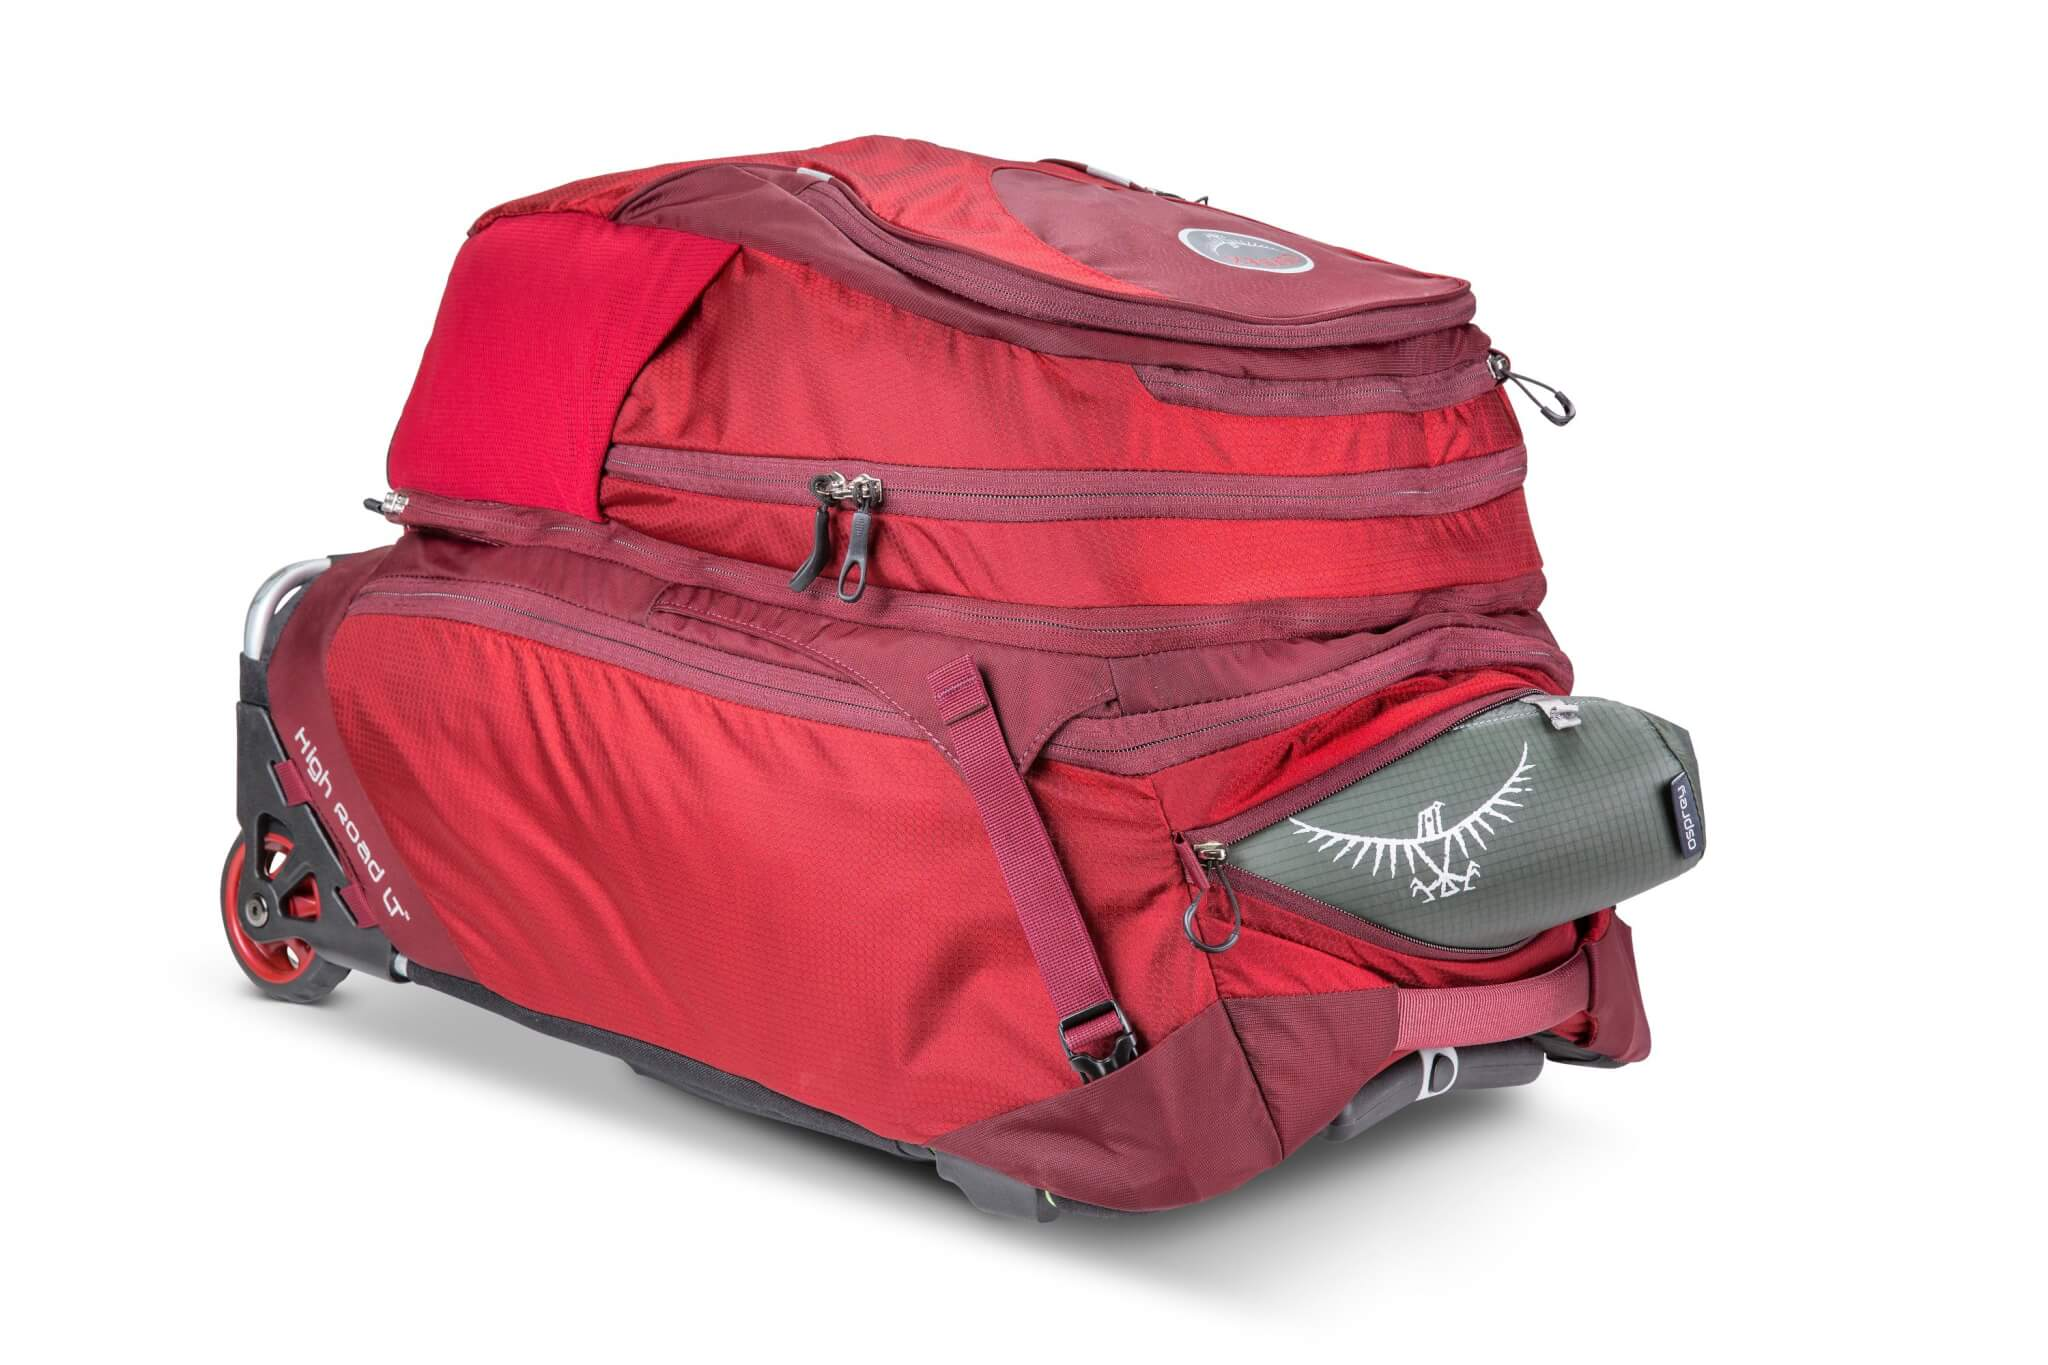 3f597c7b70 Rolling Carry-On Backpacks  What to Buy